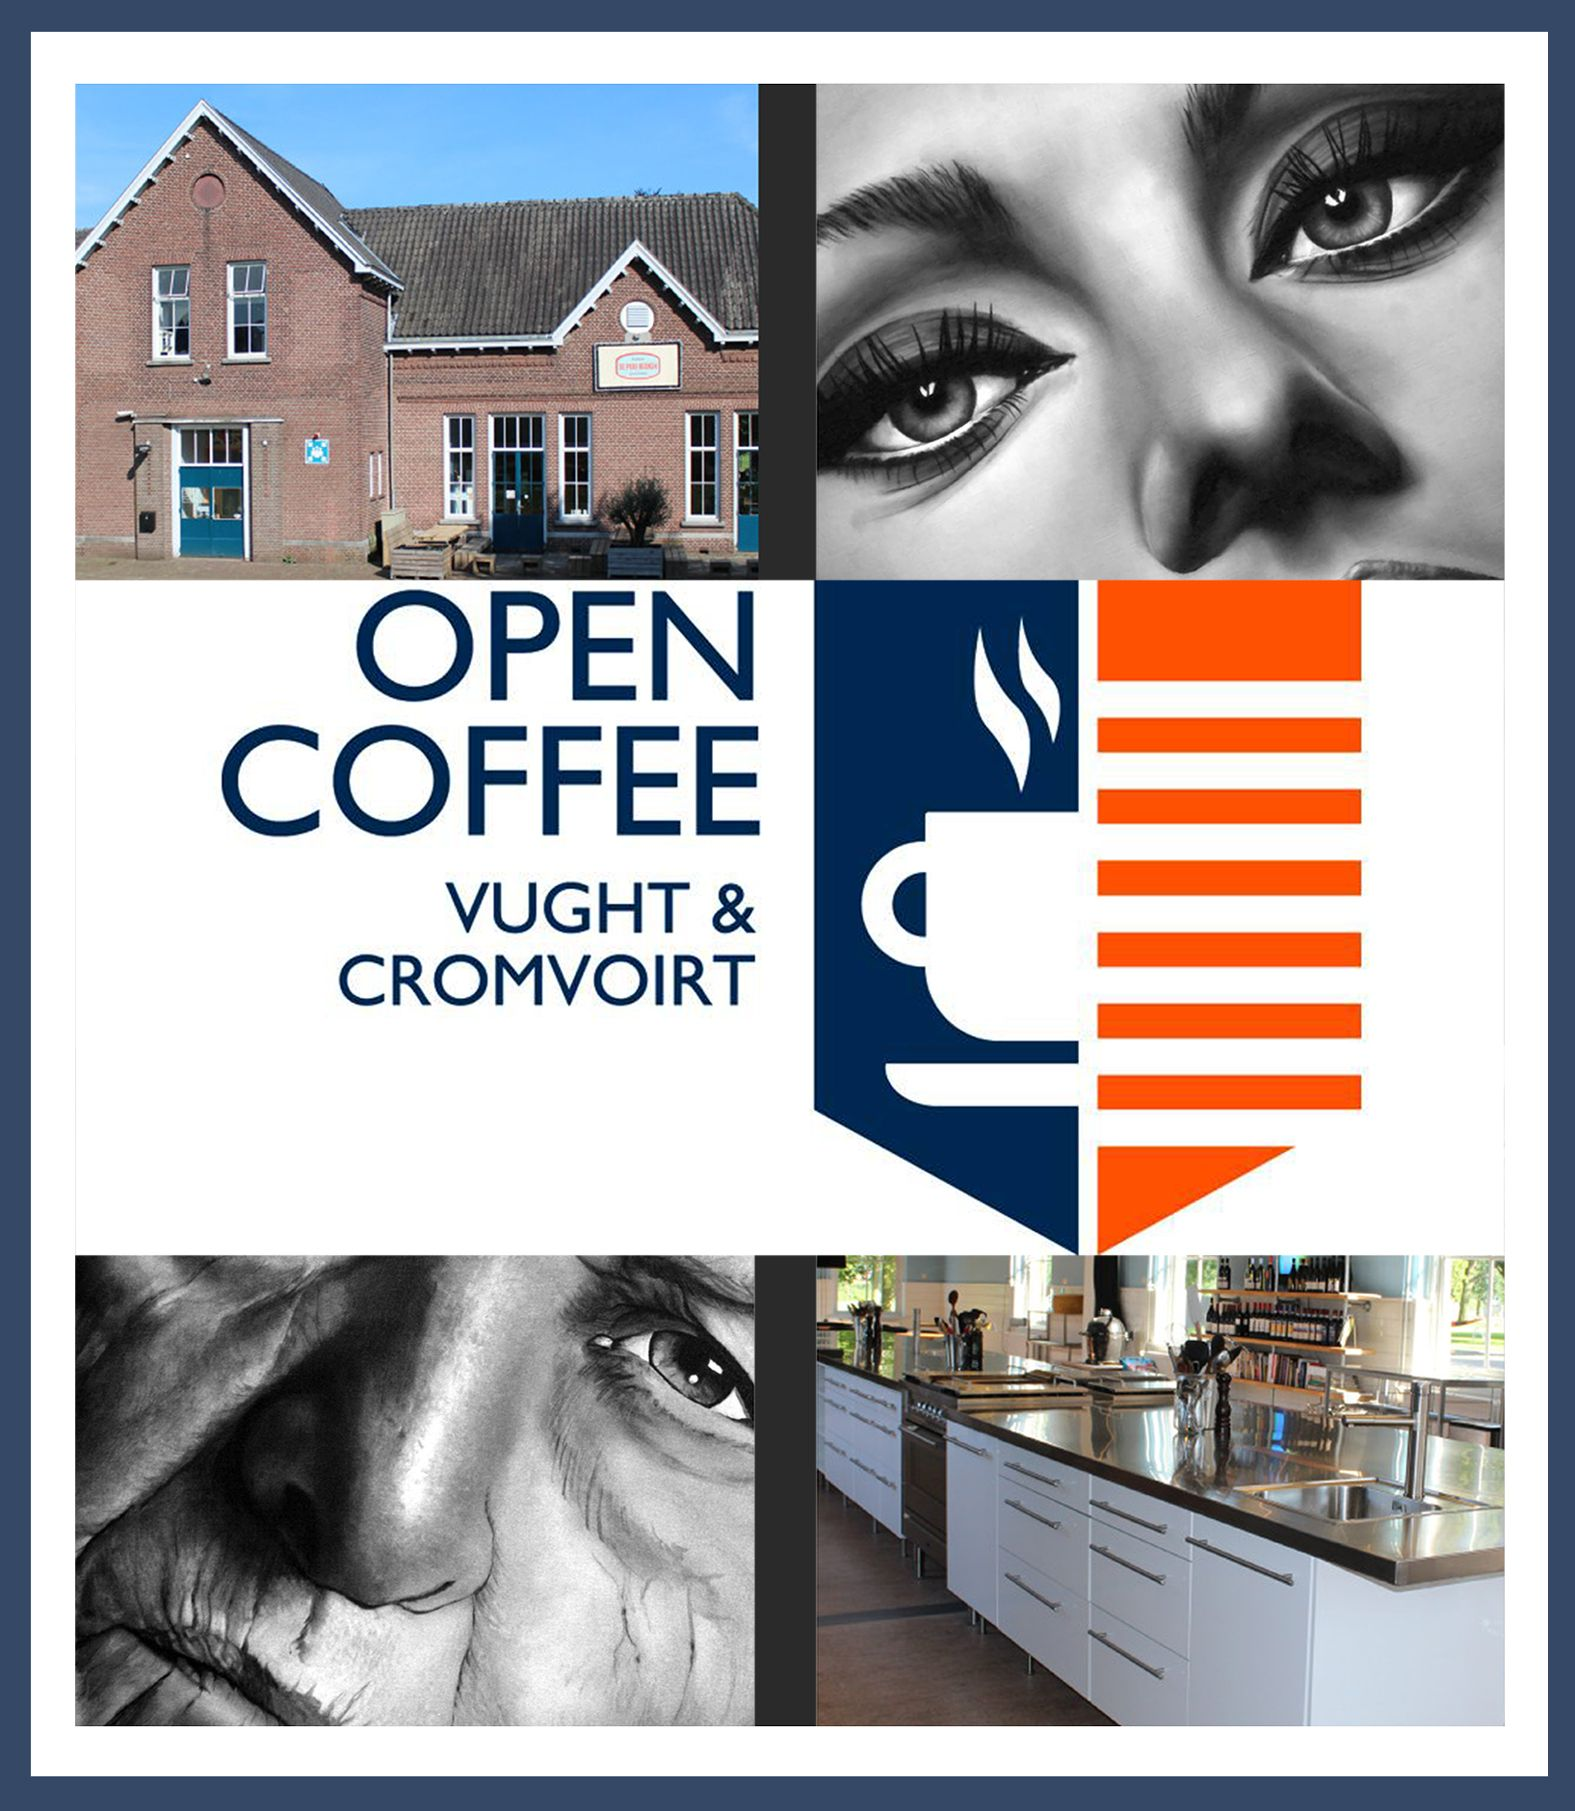 Pure Keuken Vught Morgen 20 Mei Van 9 Tot 11uur Is De Open Coffee Vught Cromvoirt